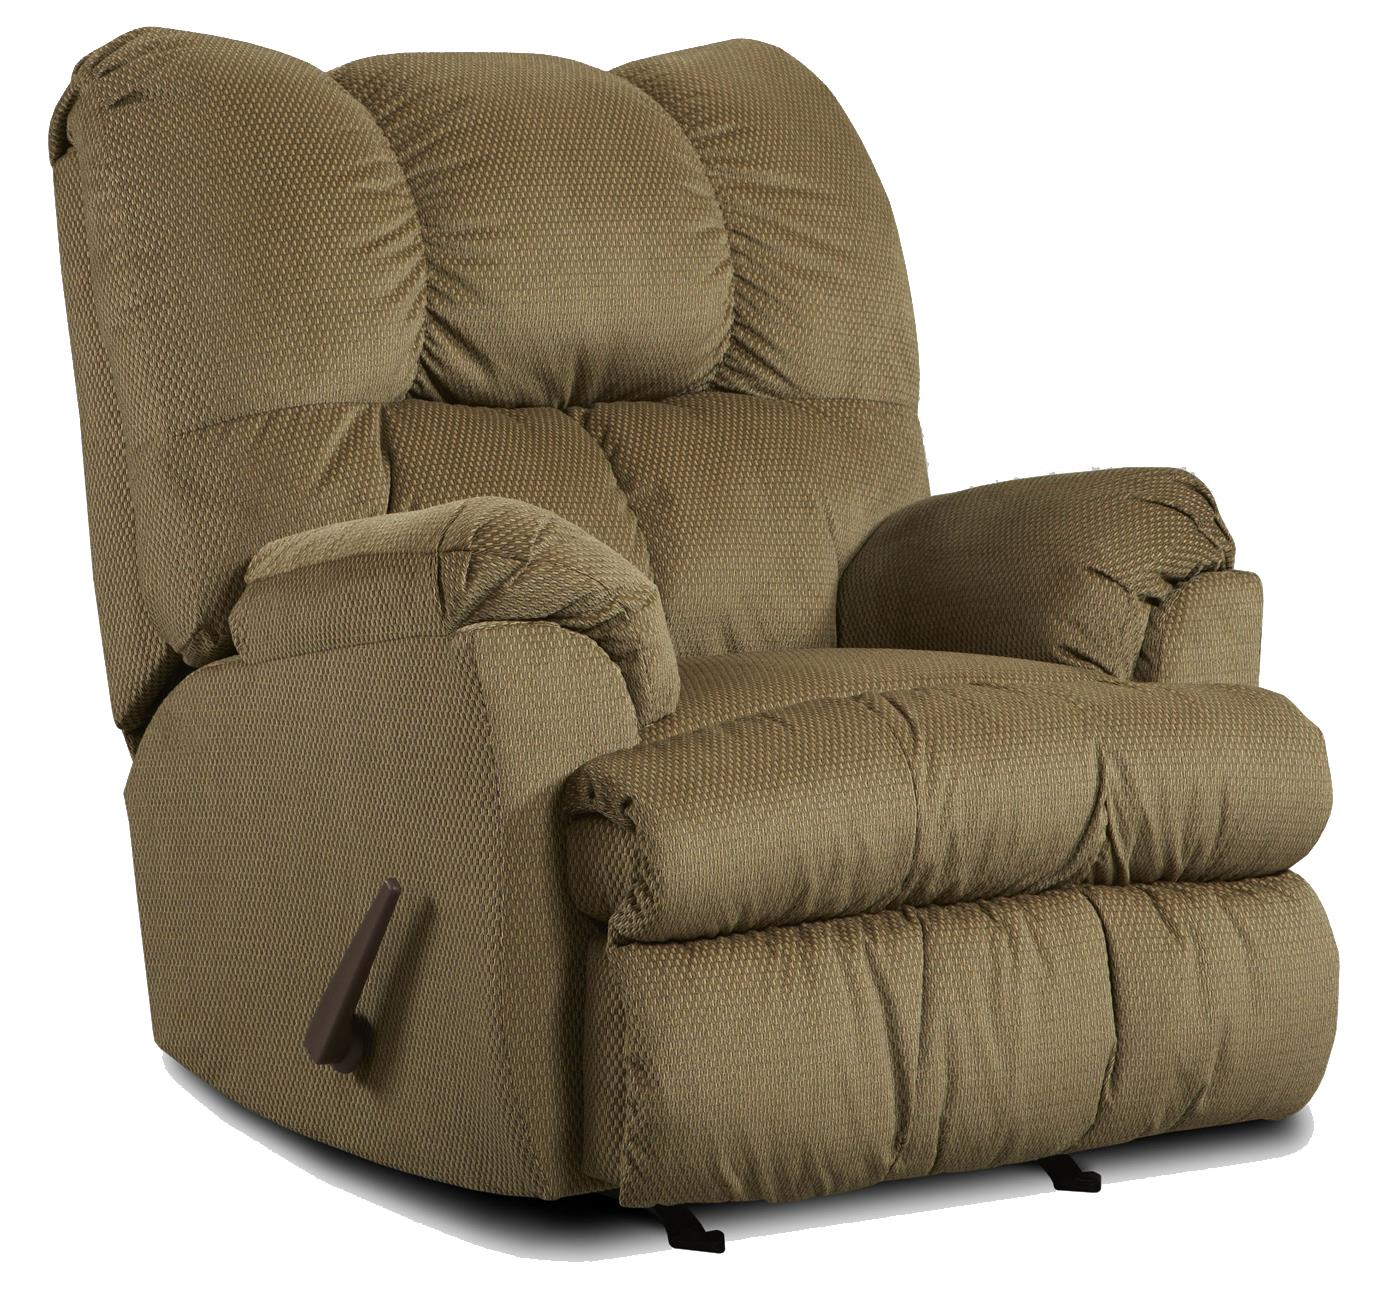 Moab Rocker Recliner by Affordable Furniture at Wilcox Furniture